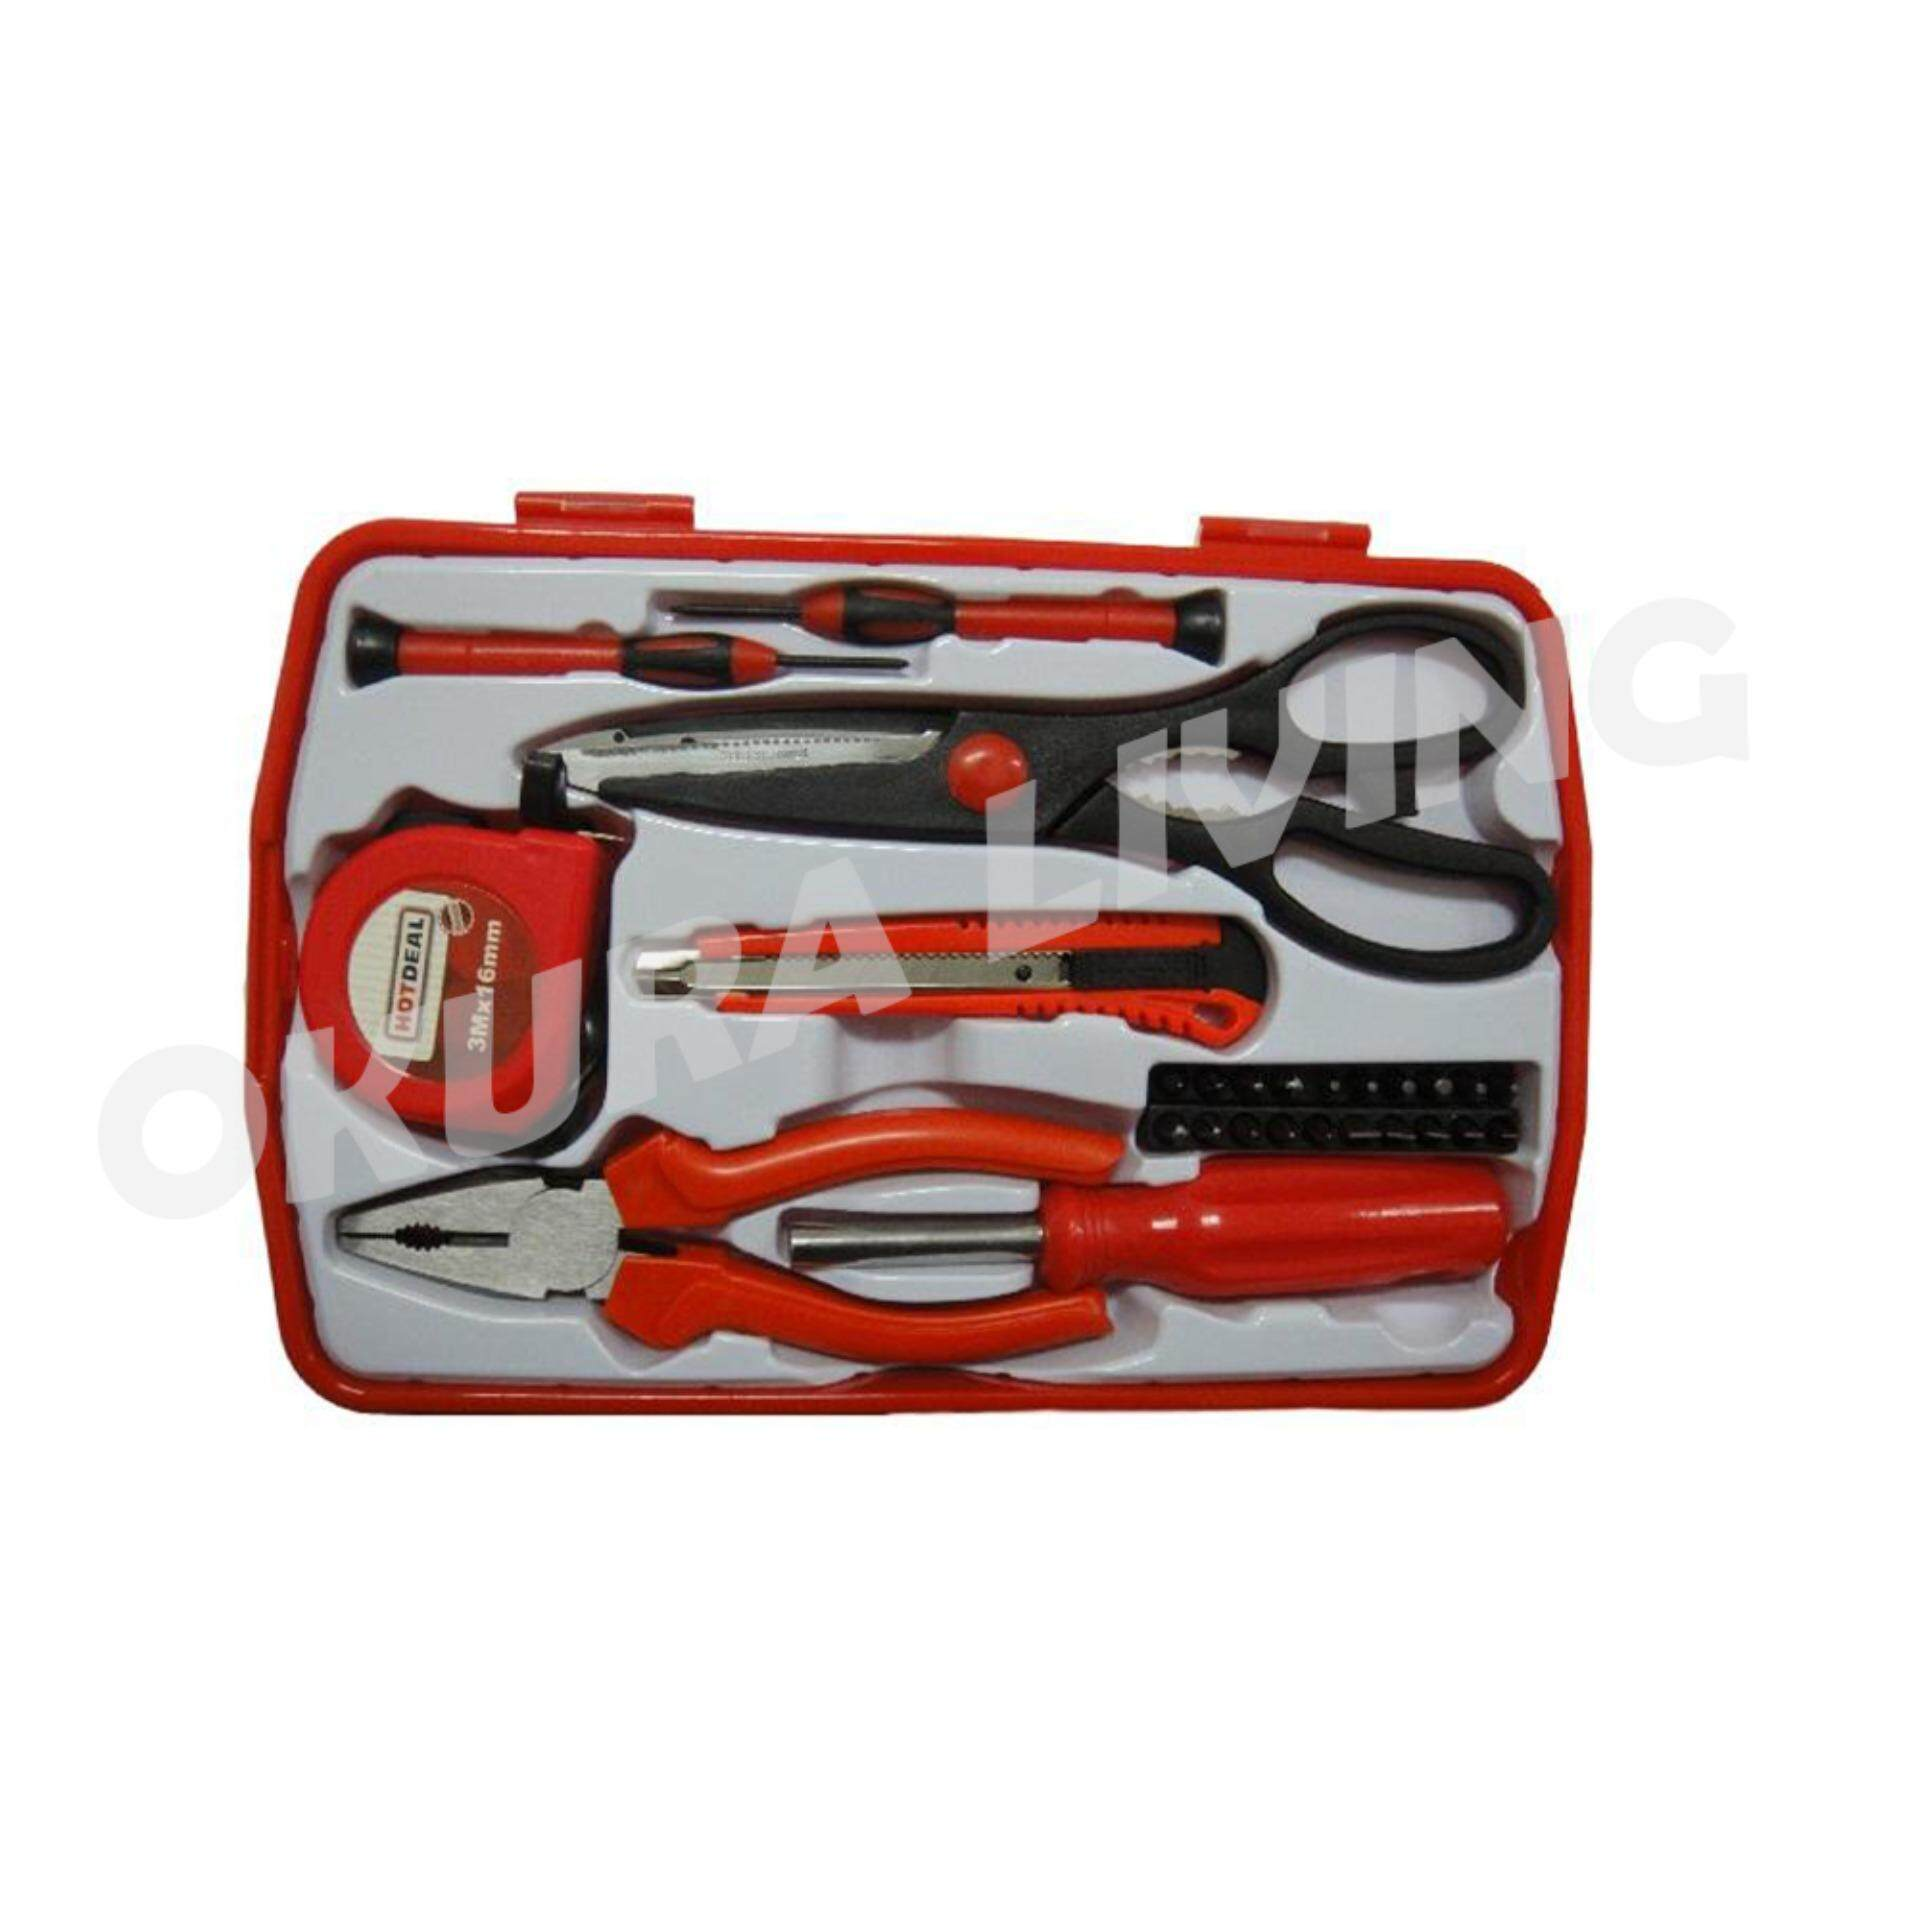 OKURA 9PCS Multi-use Home Hand Carry Tool Kit (Household DIY Tool Set) 4